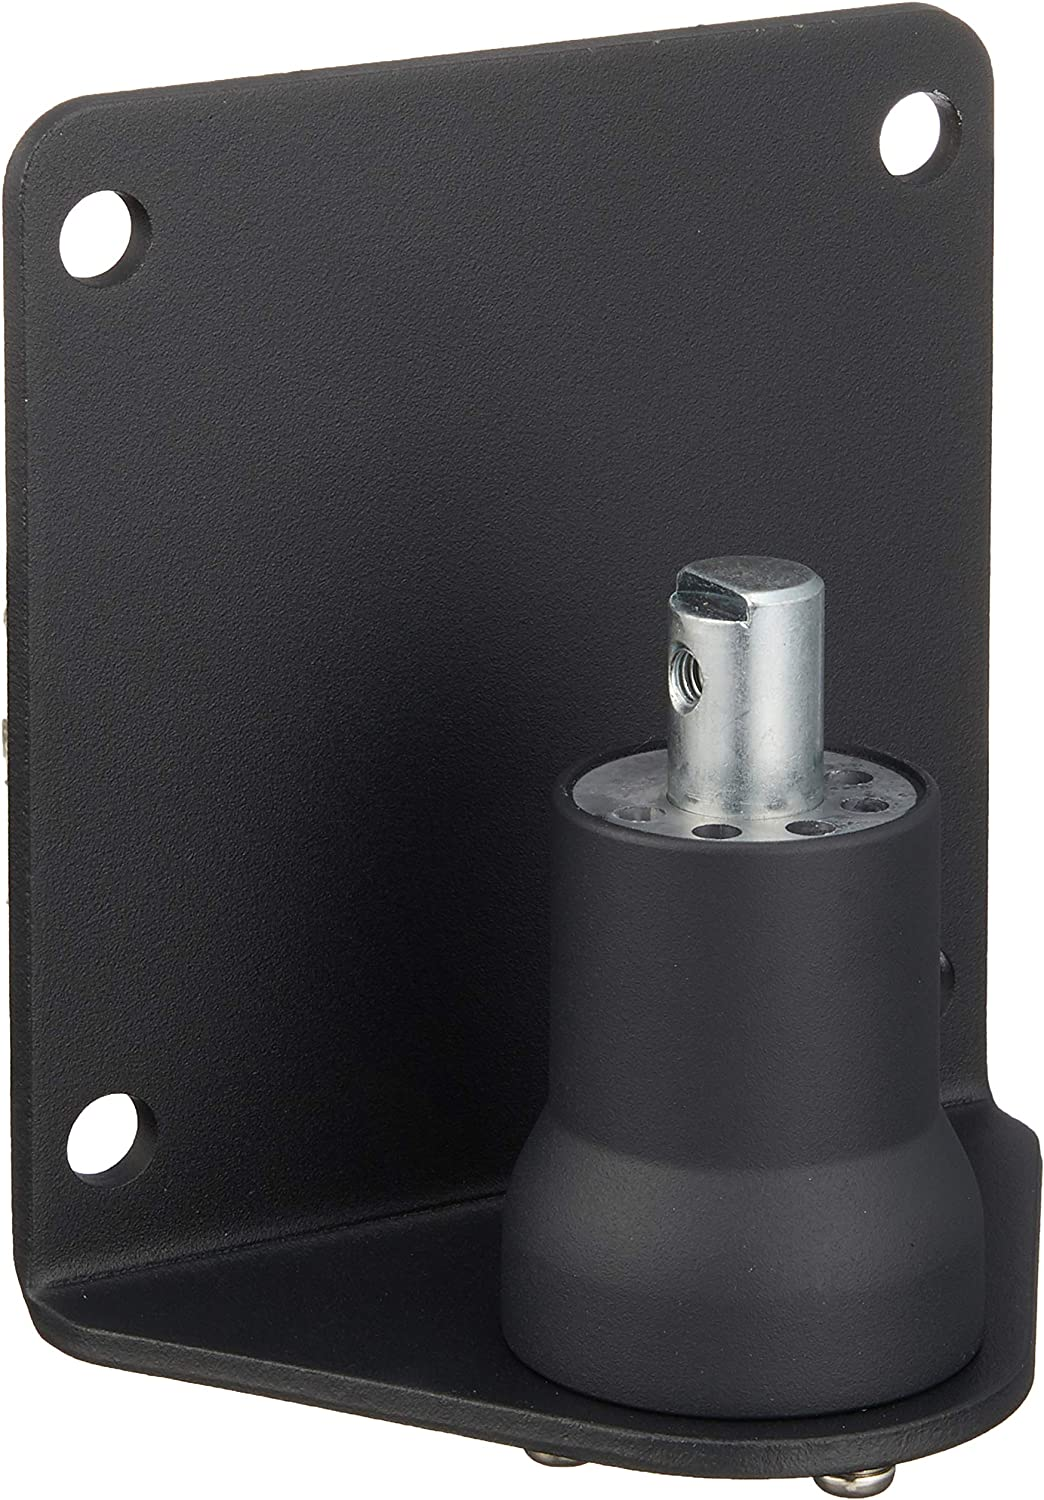 mounting hole diameter 10mm Black Alpha Tech PS9 Series Simple panel mounting adapter PS9-902W-B japan import